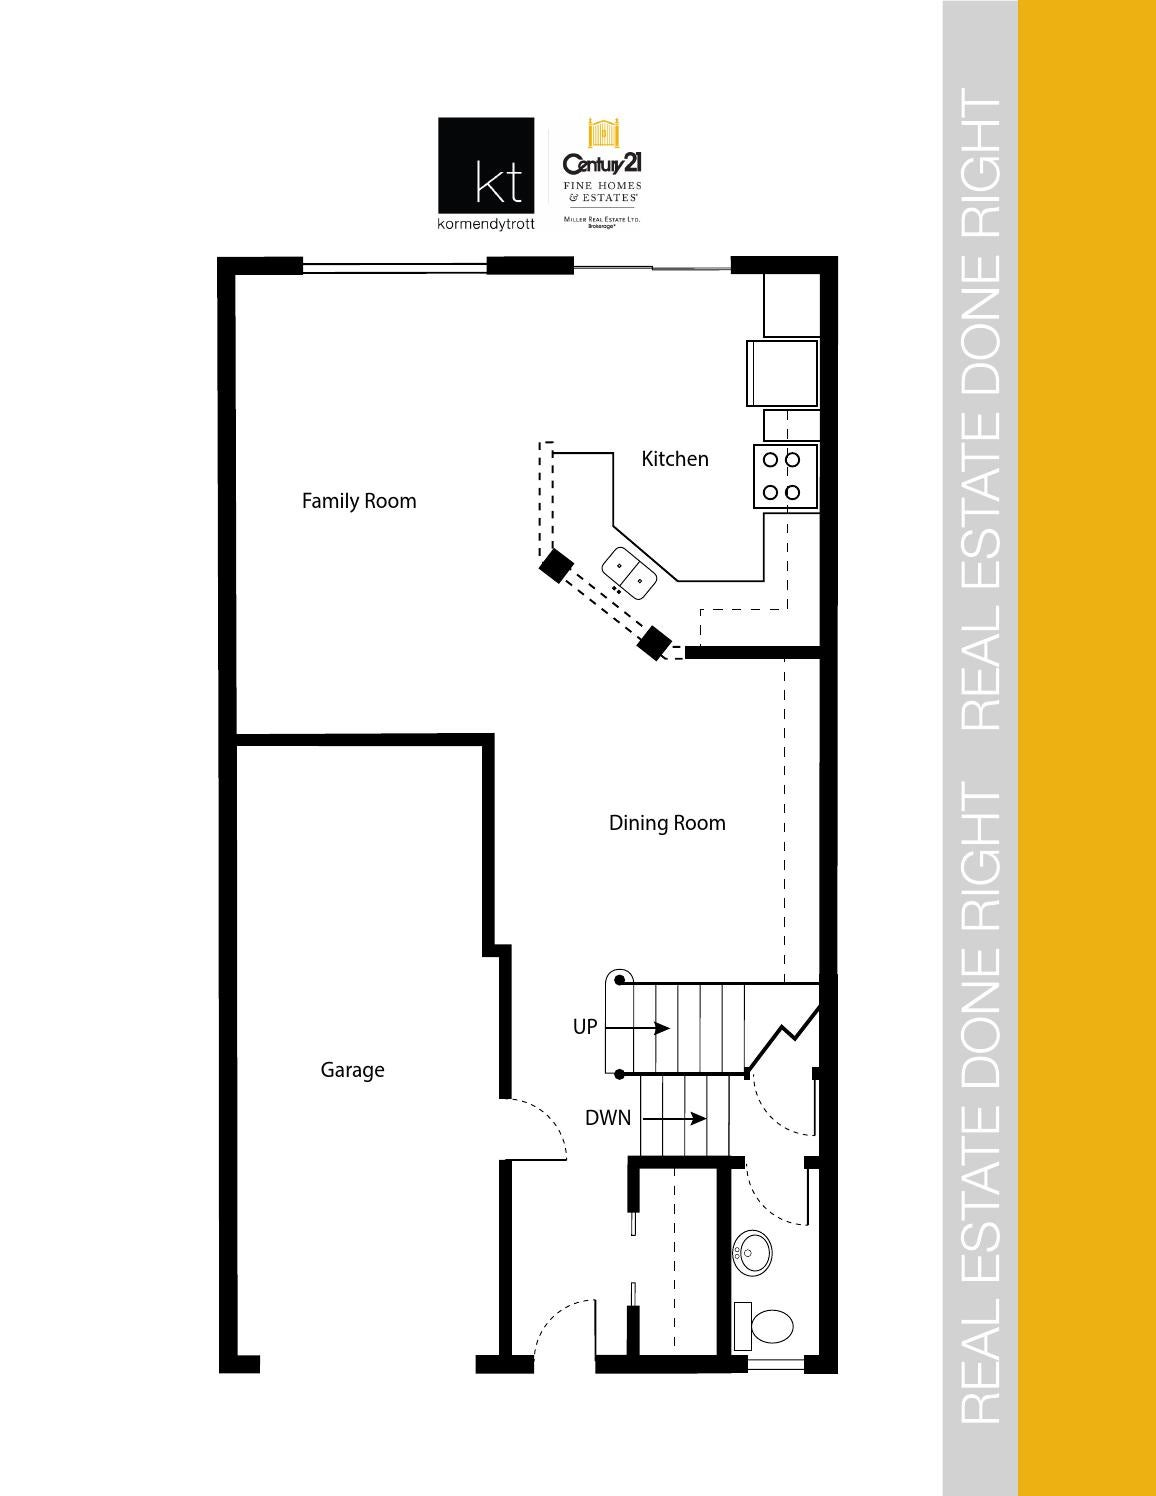 floor plans by the kormendy trott team issuu 474 collis court floor plan ground floor